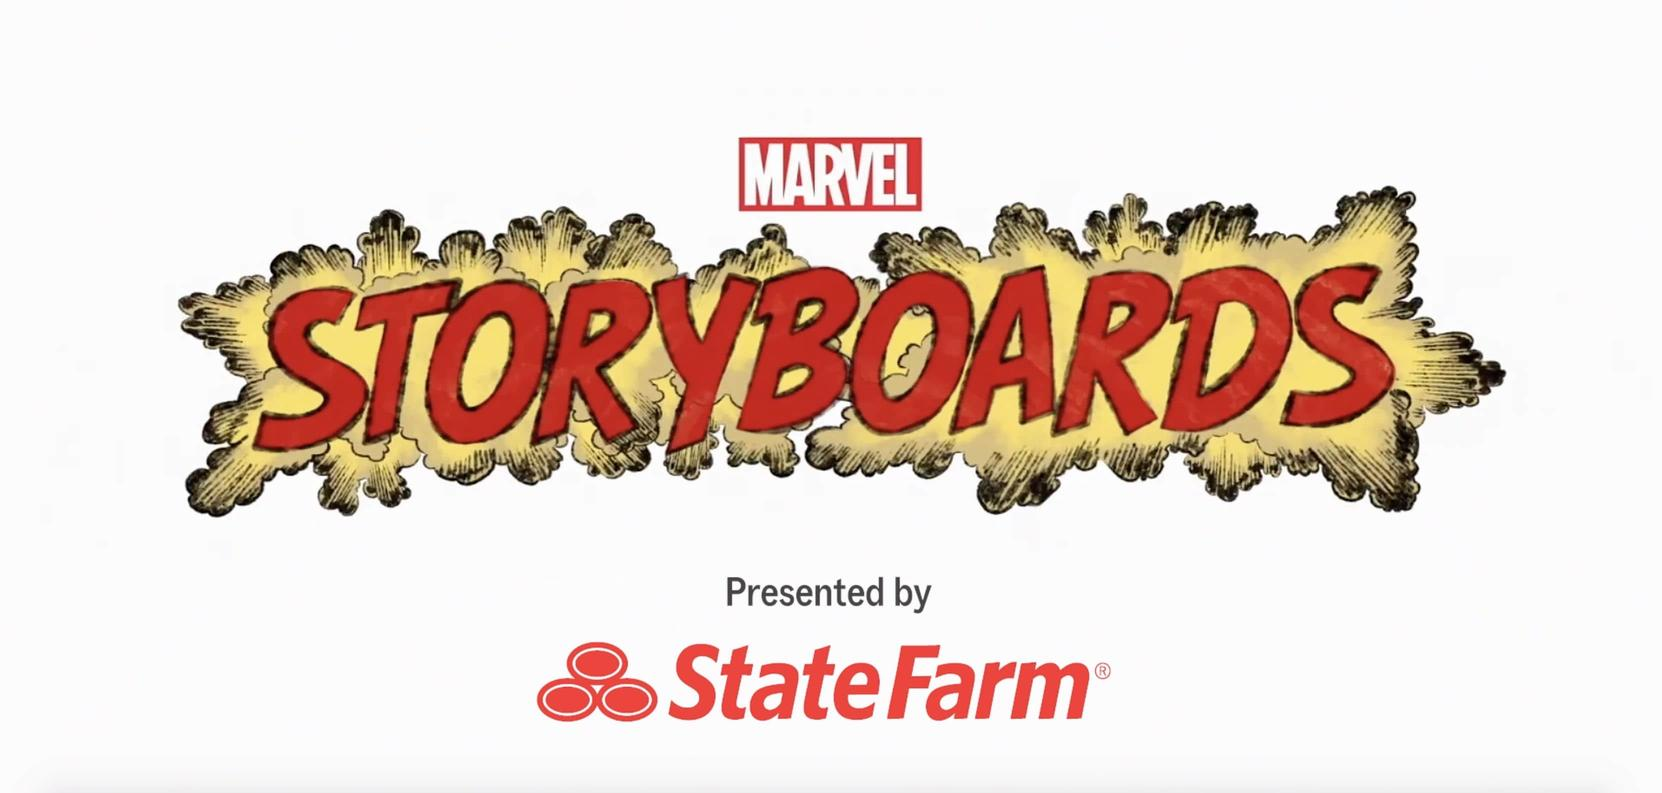 Marvel's Storyboards